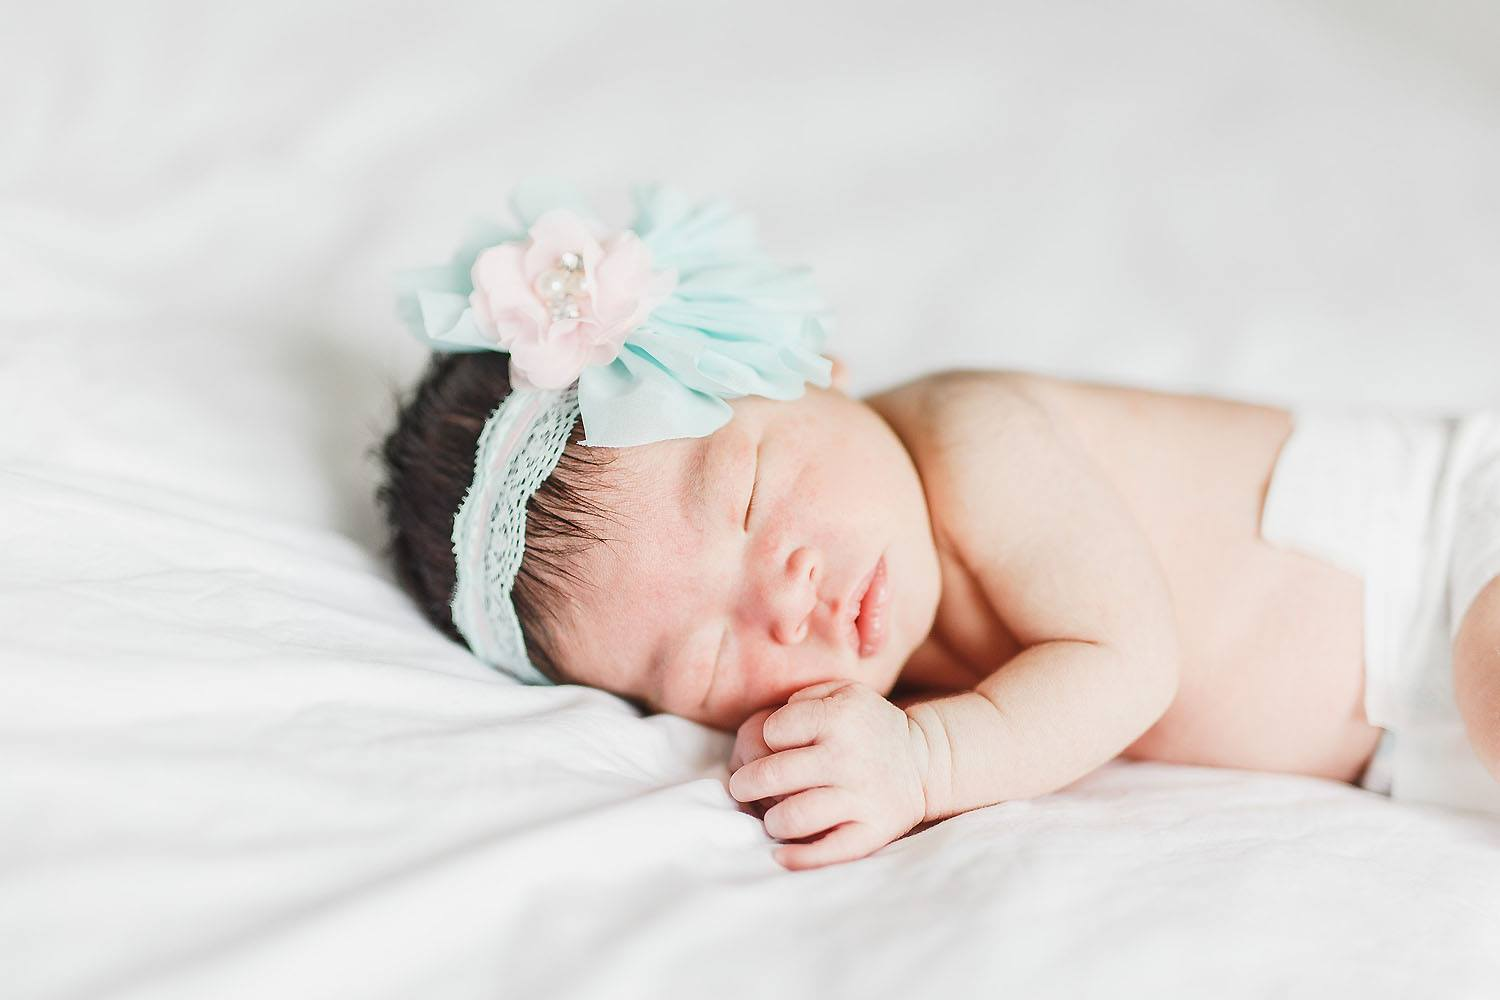 newborn-portrait-photography-kent-2.jpg